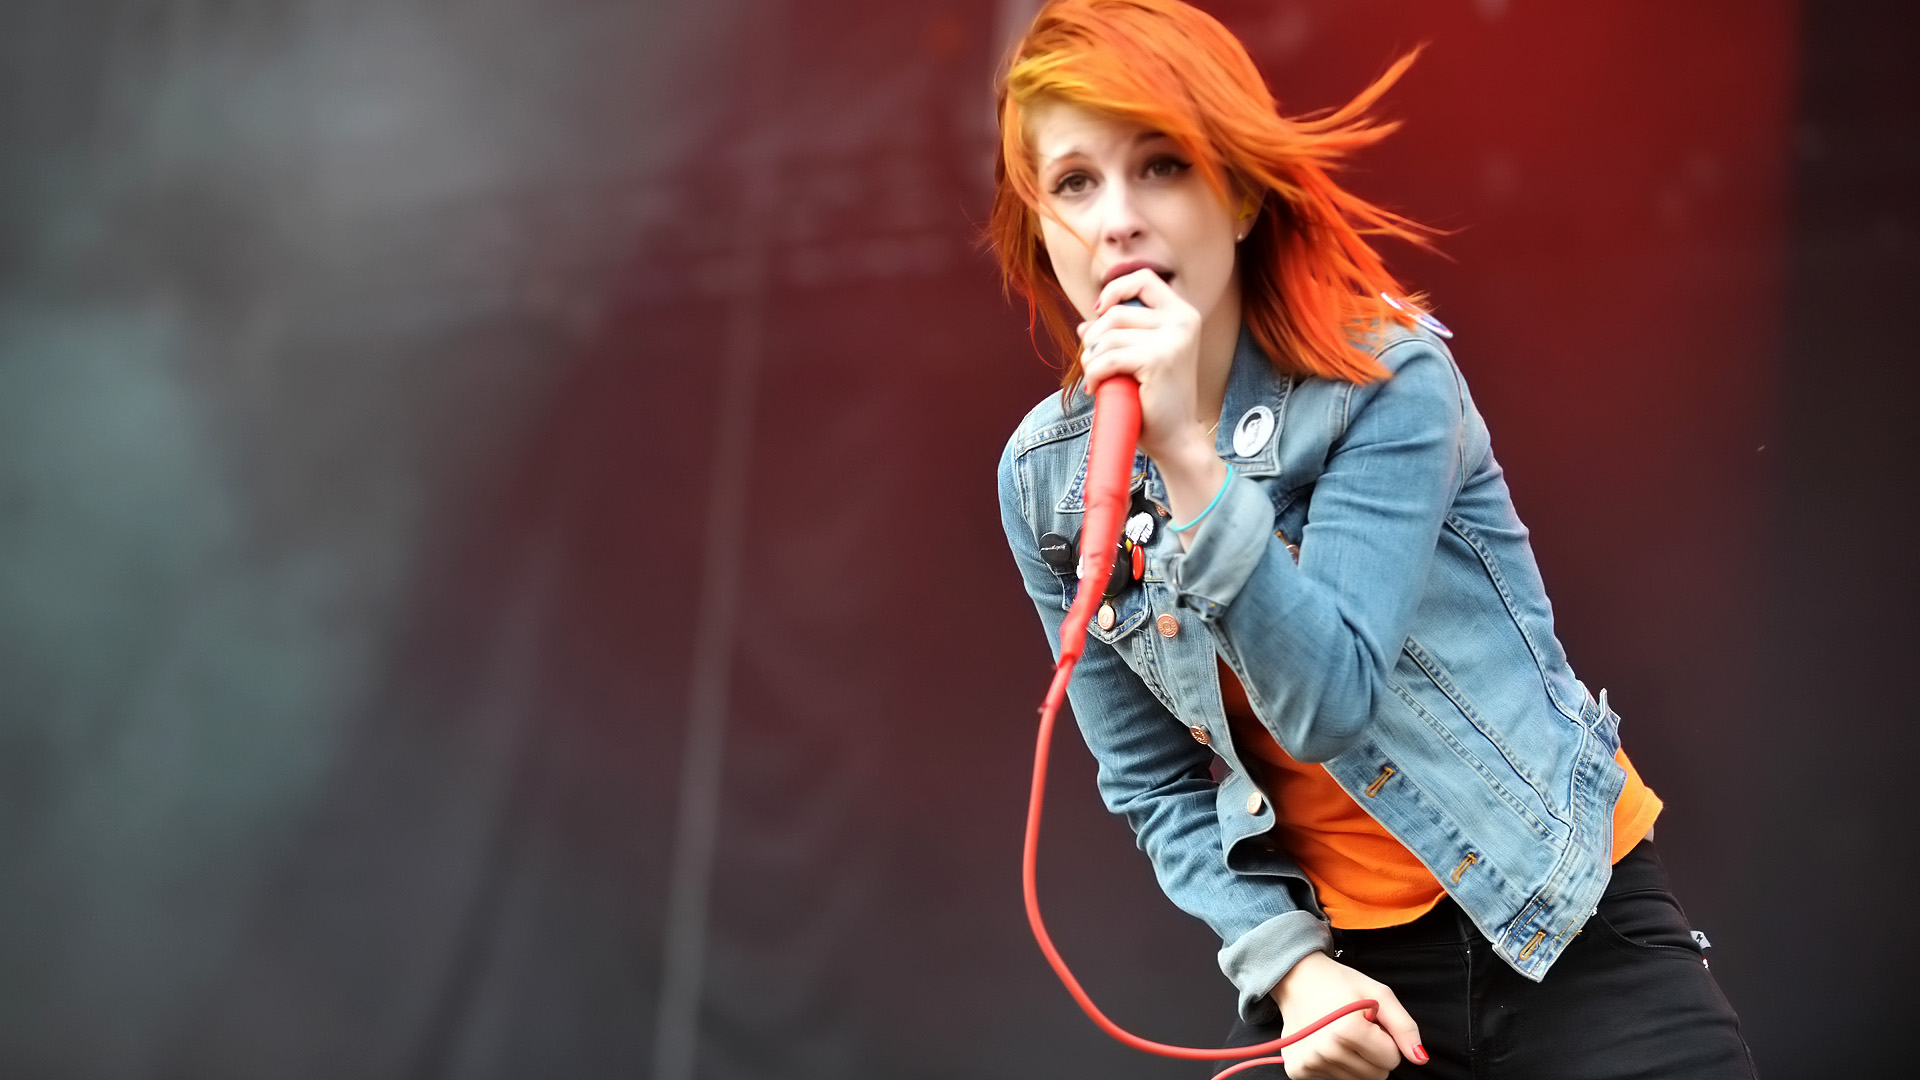 Paramore Images Hayley Williams HD Wallpaper And Background Photos